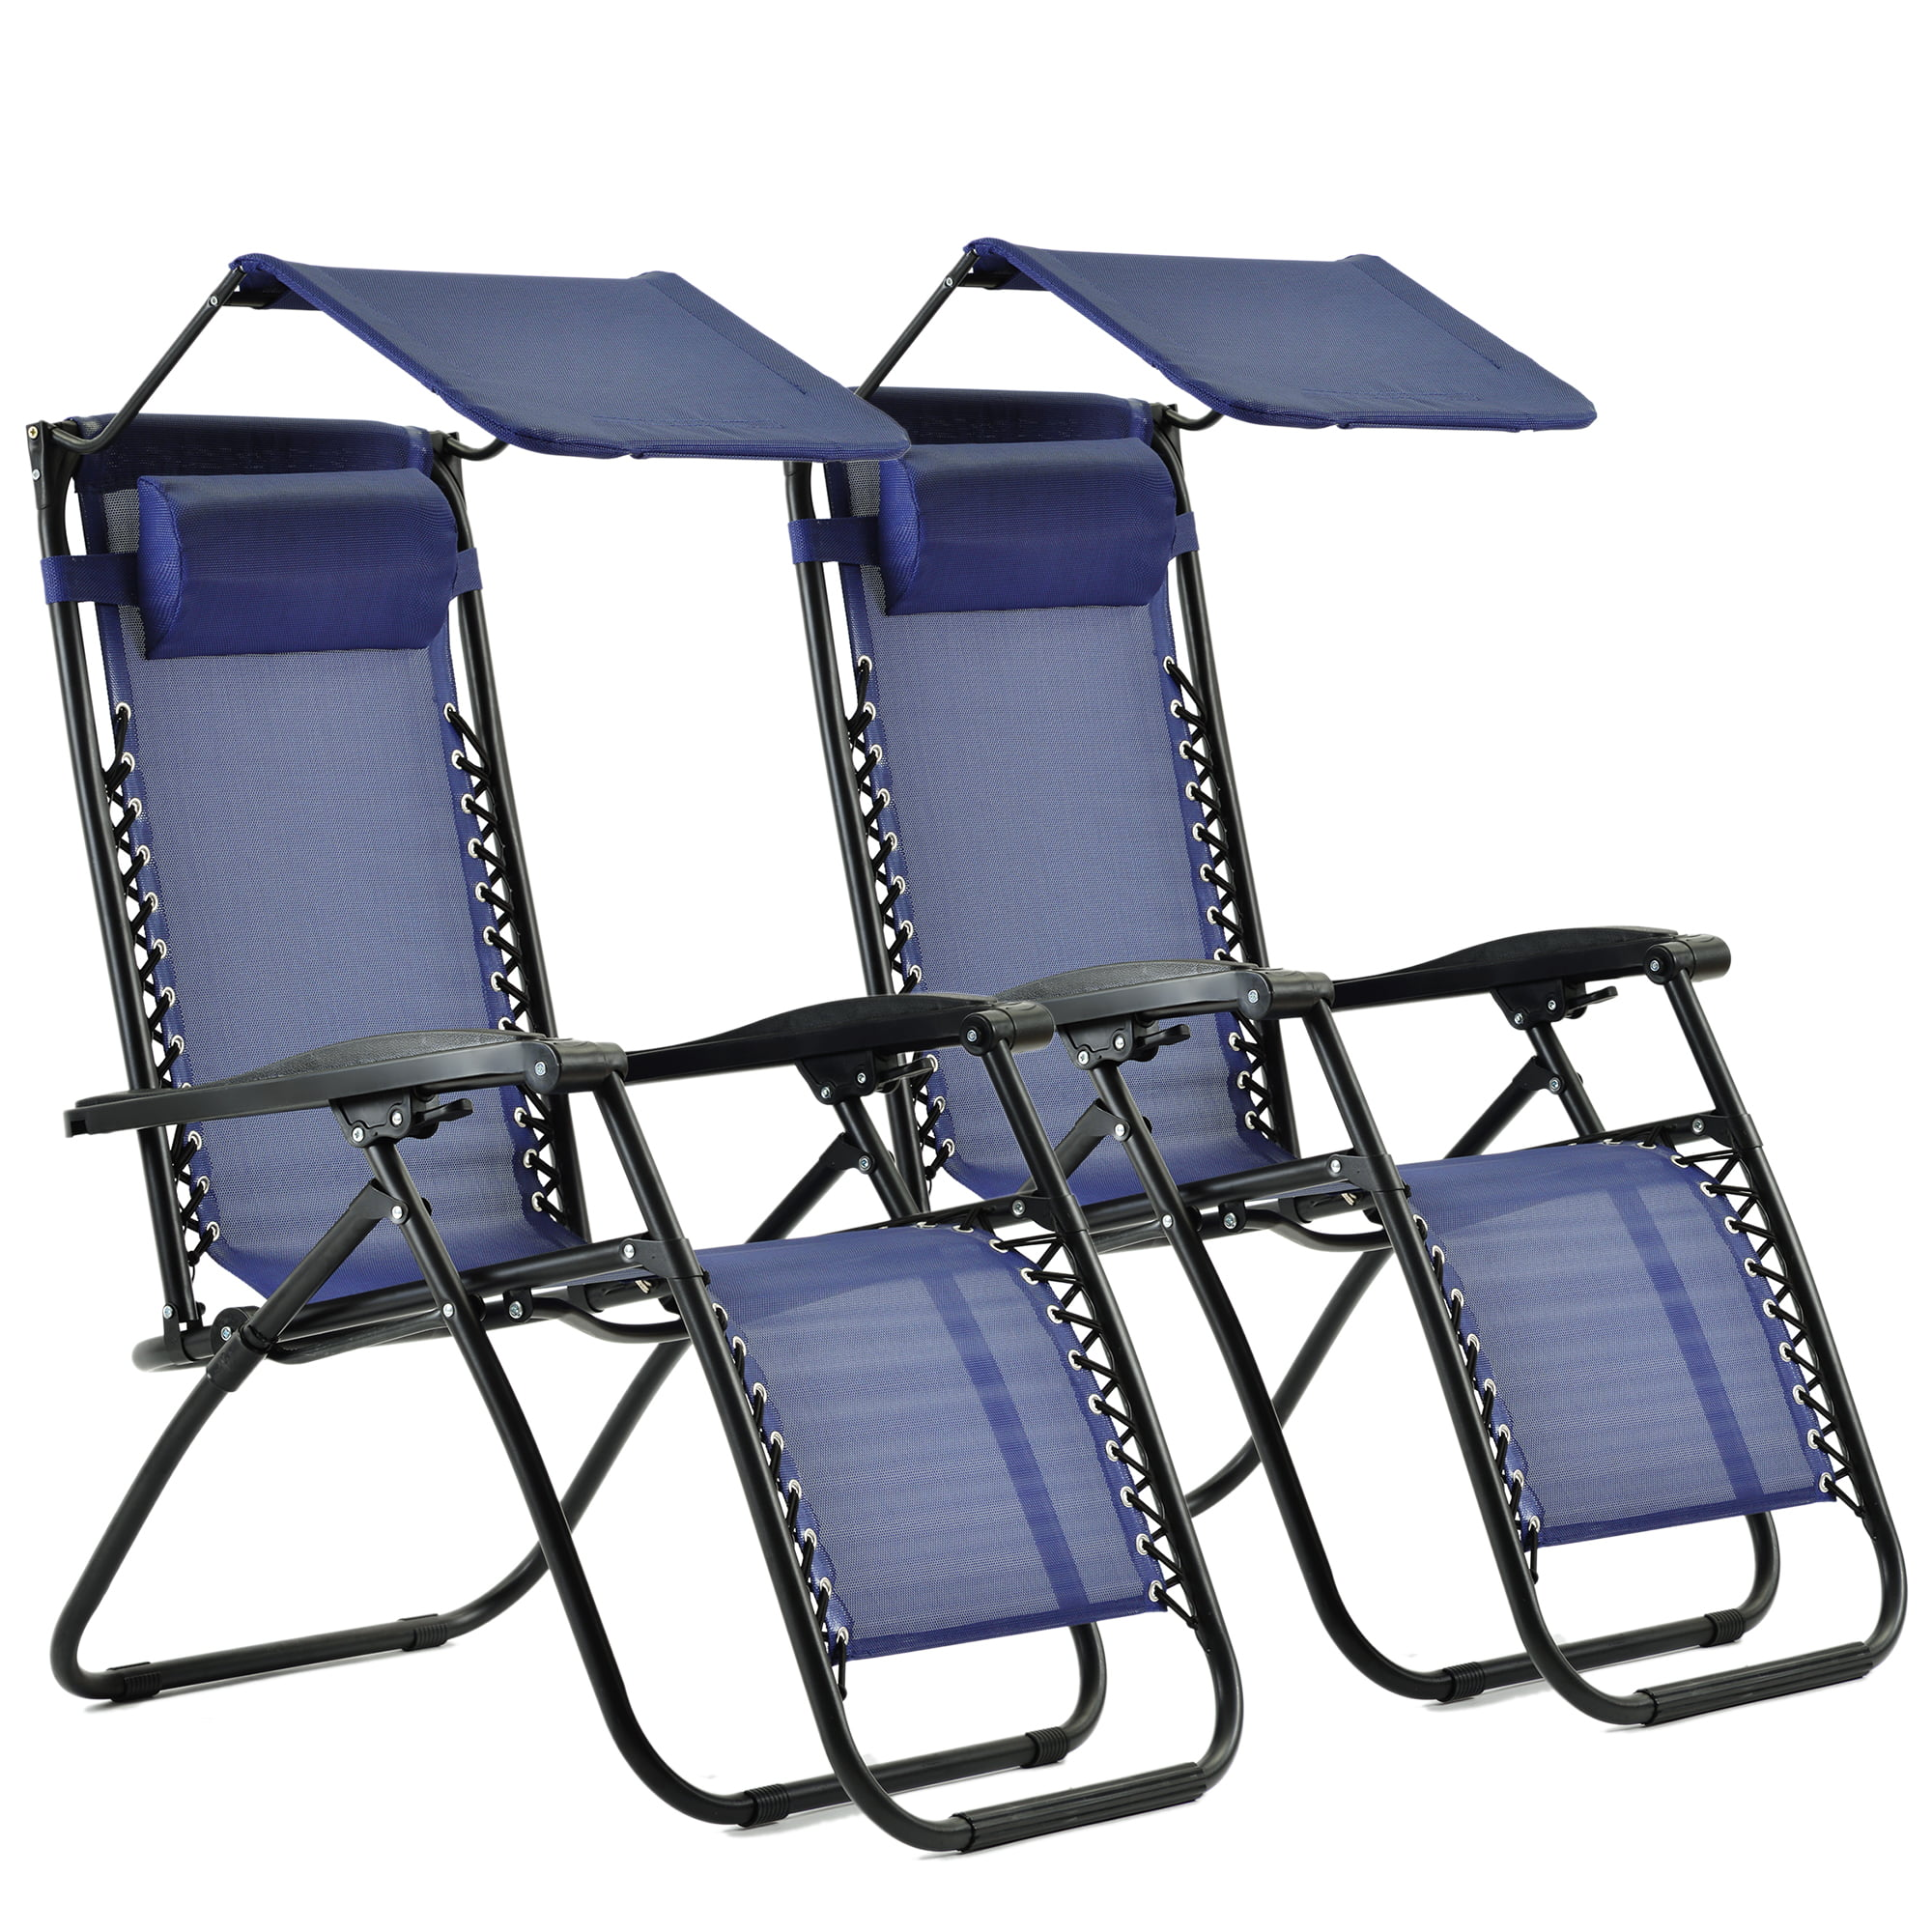 clearance folding patio chairs set of 2 zero gravity outdoor lounge chairs with canopy shade adjustable lawn reclining chairs with pillow for